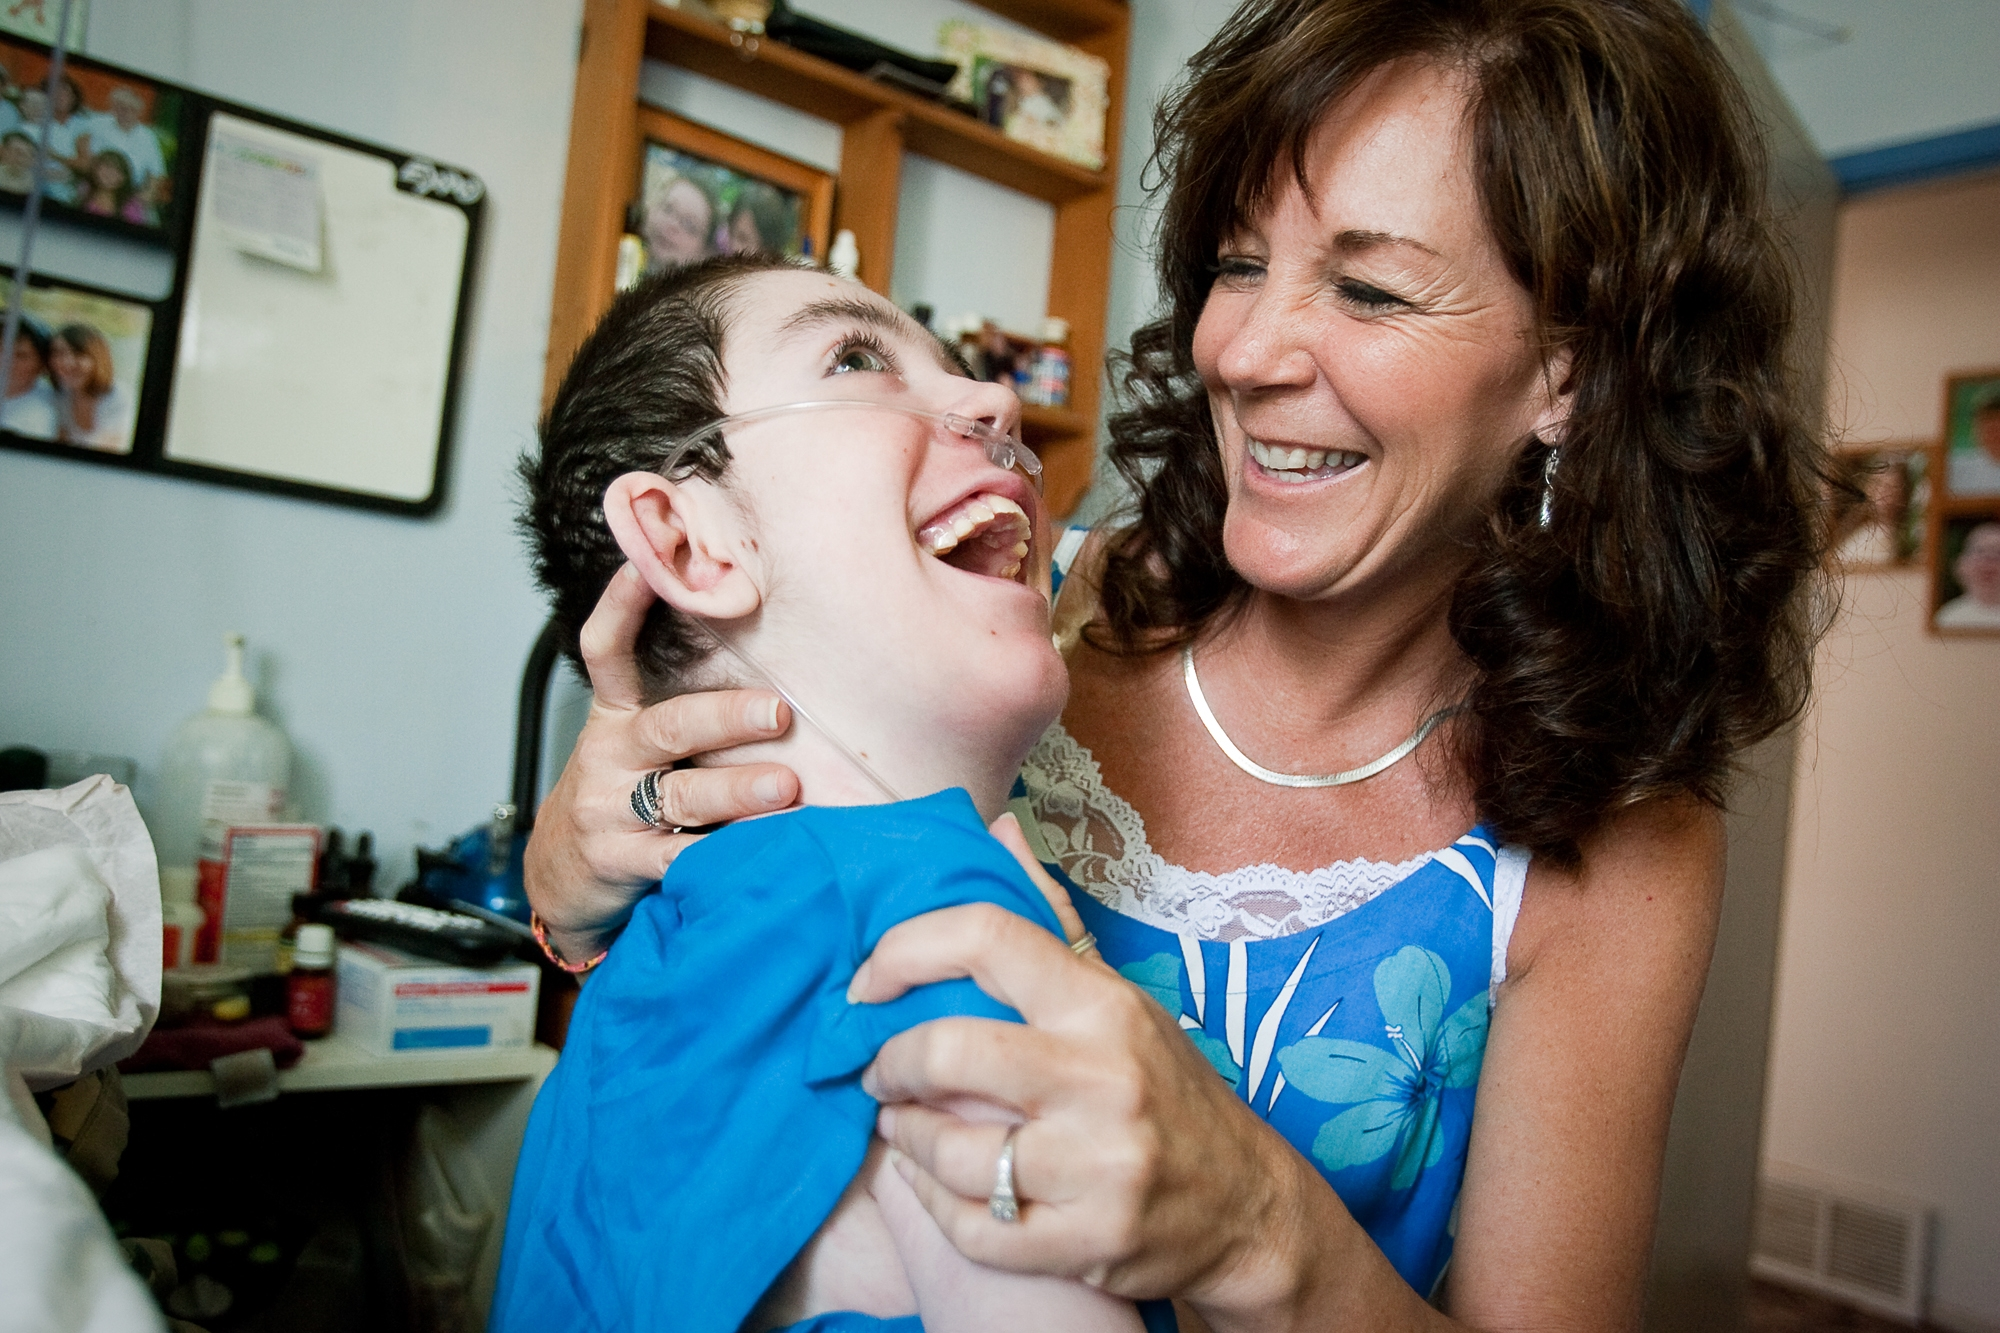 SHAWN GUST/Press Carla Schauer and her 12-year-old son Abe, who has Pelizaeus-Merzbacher Disease, laugh together while visiting Tuesday in their Post Falls home.  Local businesses worked together through the Wishing Star Foundation to donate a central air and heating system to the Schauer's, which will allow Abe to be in other rooms in his home.